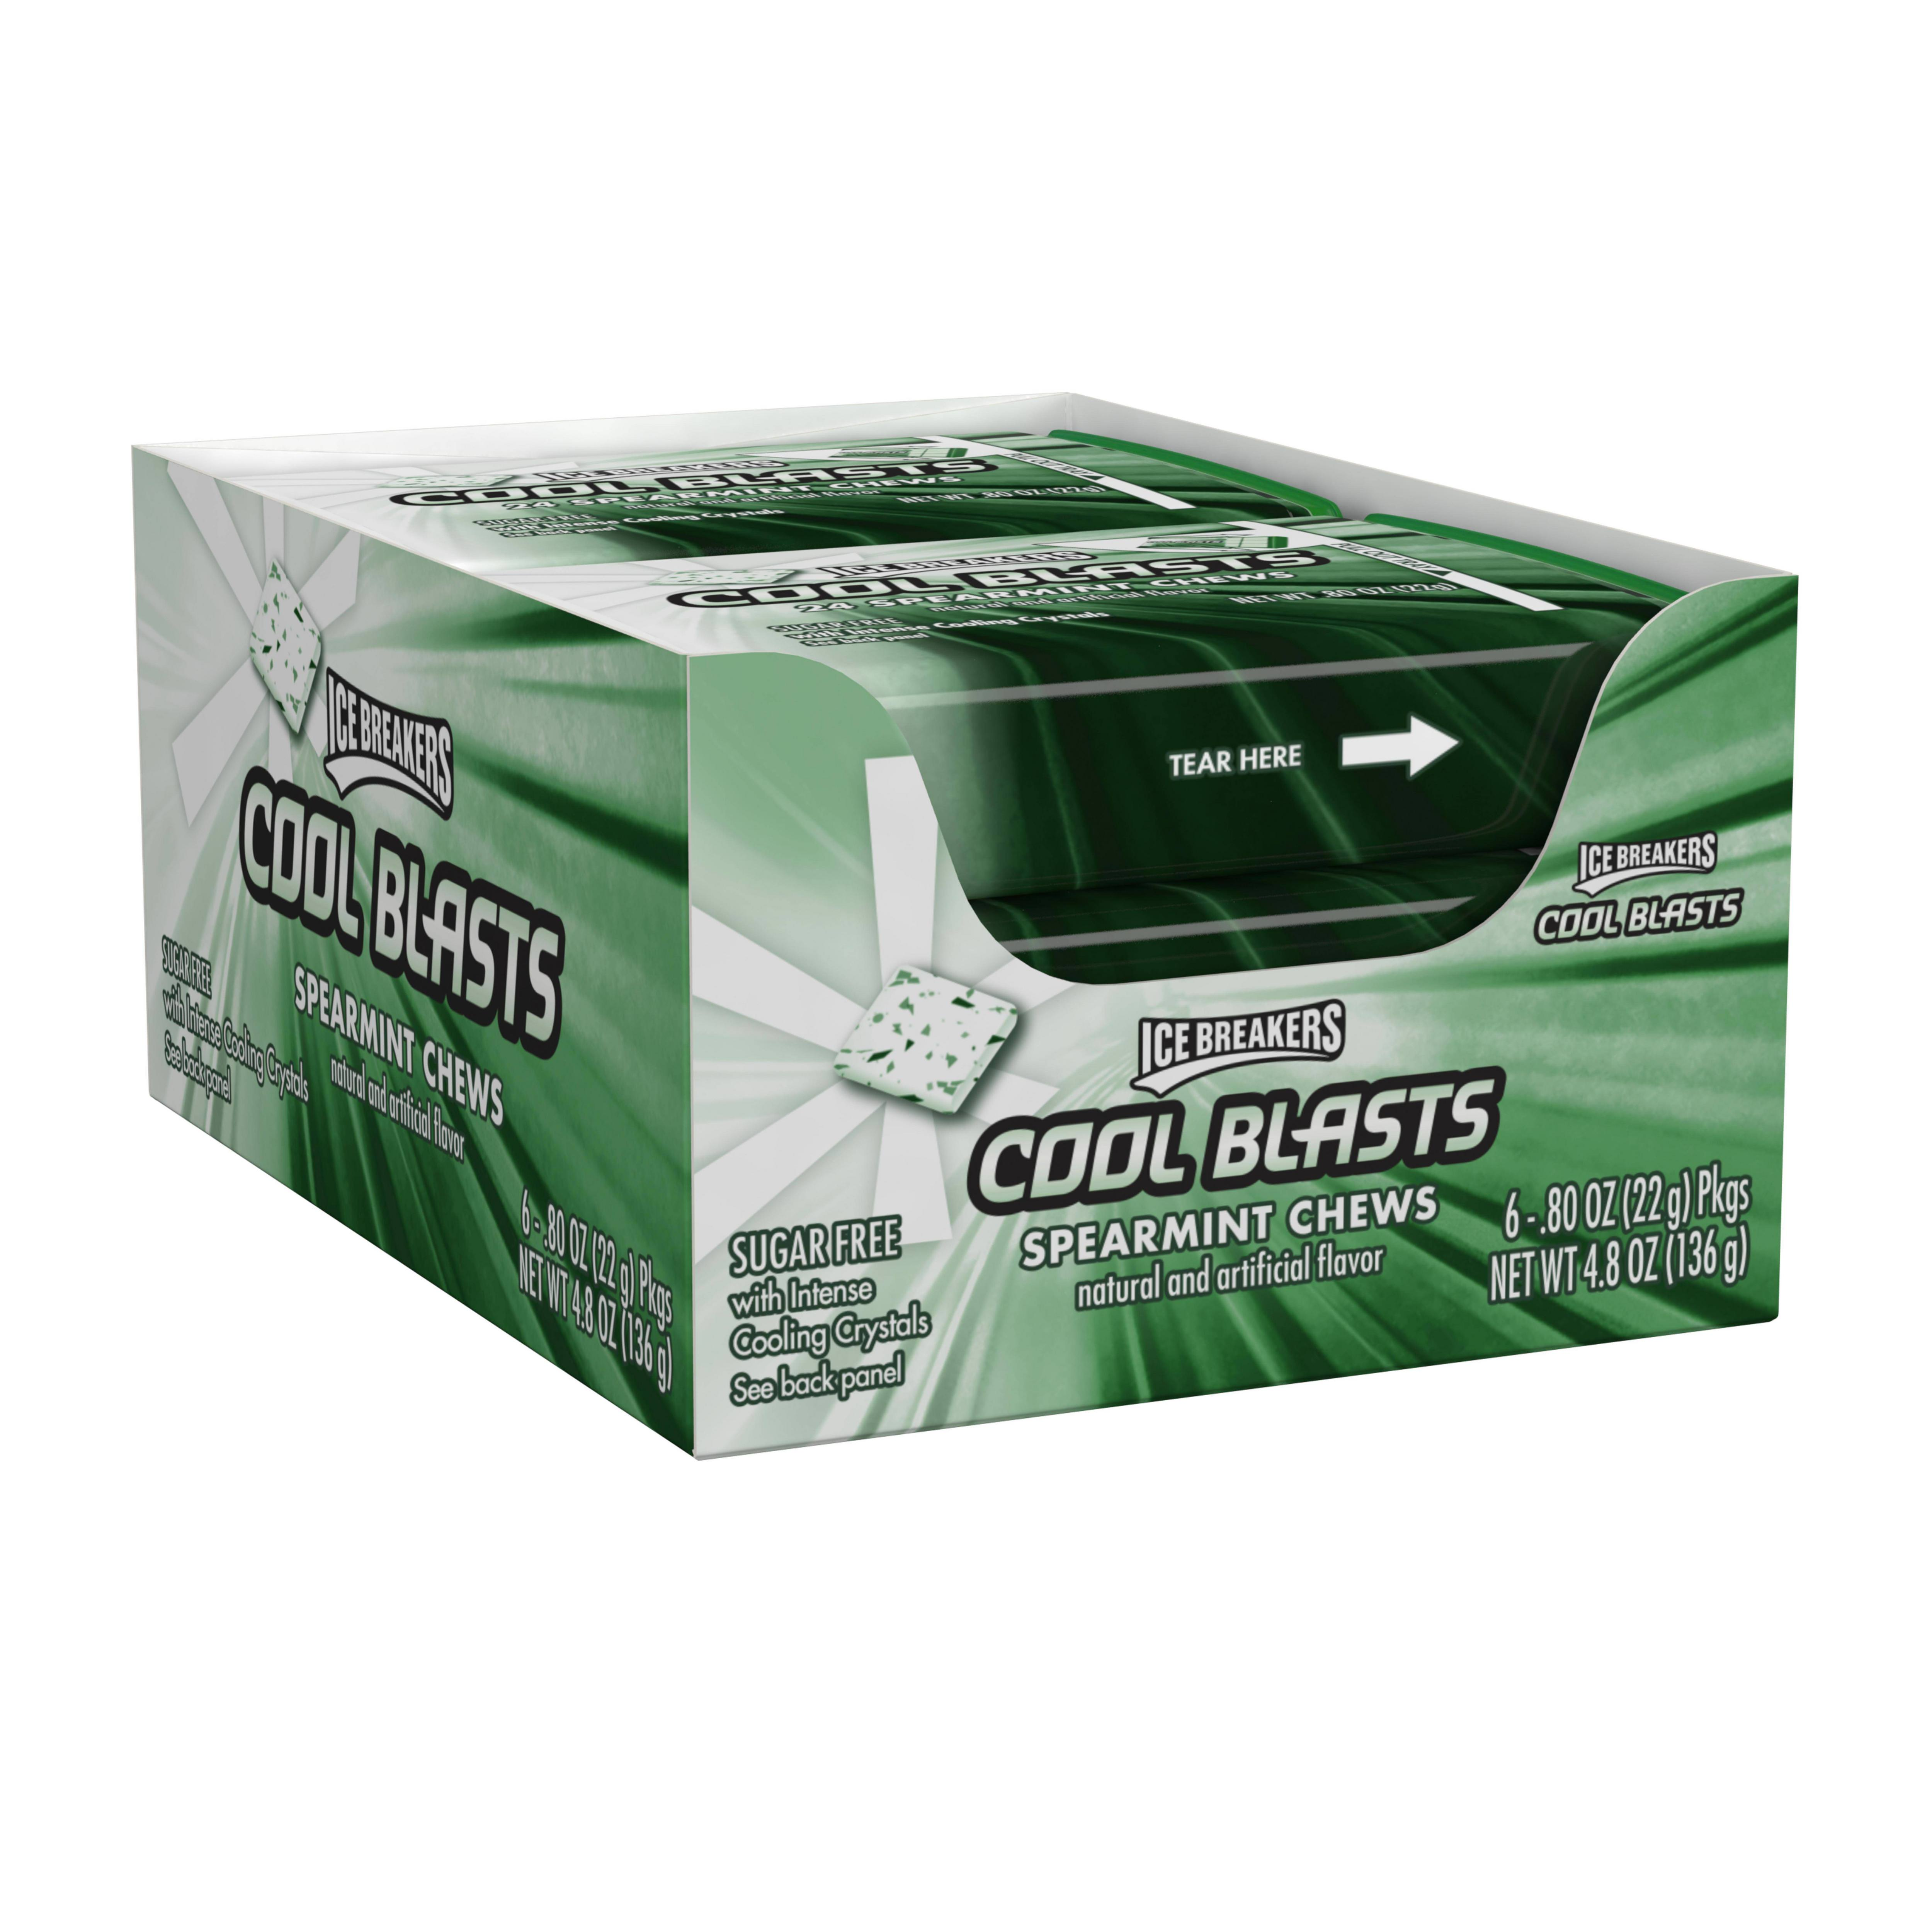 Ice Breakers Cool Blasts Spearmints Chews Mints, 0.88 Oz., 6 Count